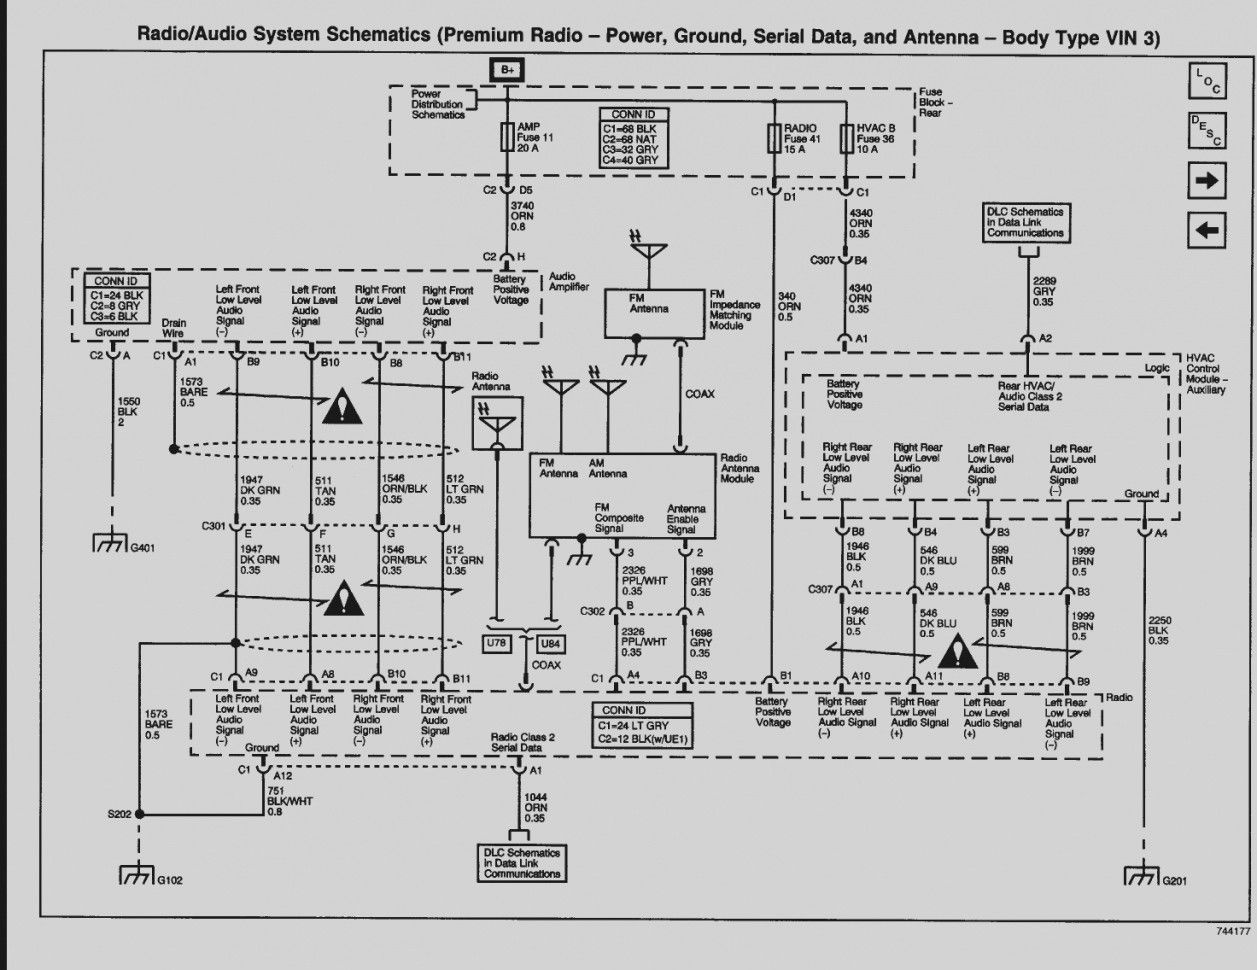 Collection Of 2009 Gmc Canyon Wiring Diagram 2003 Envoy Xl Free Download Diagrams On Free Wiring Diagrams Gmc Trucks Gmc Truck Accessories Gmc Envoy